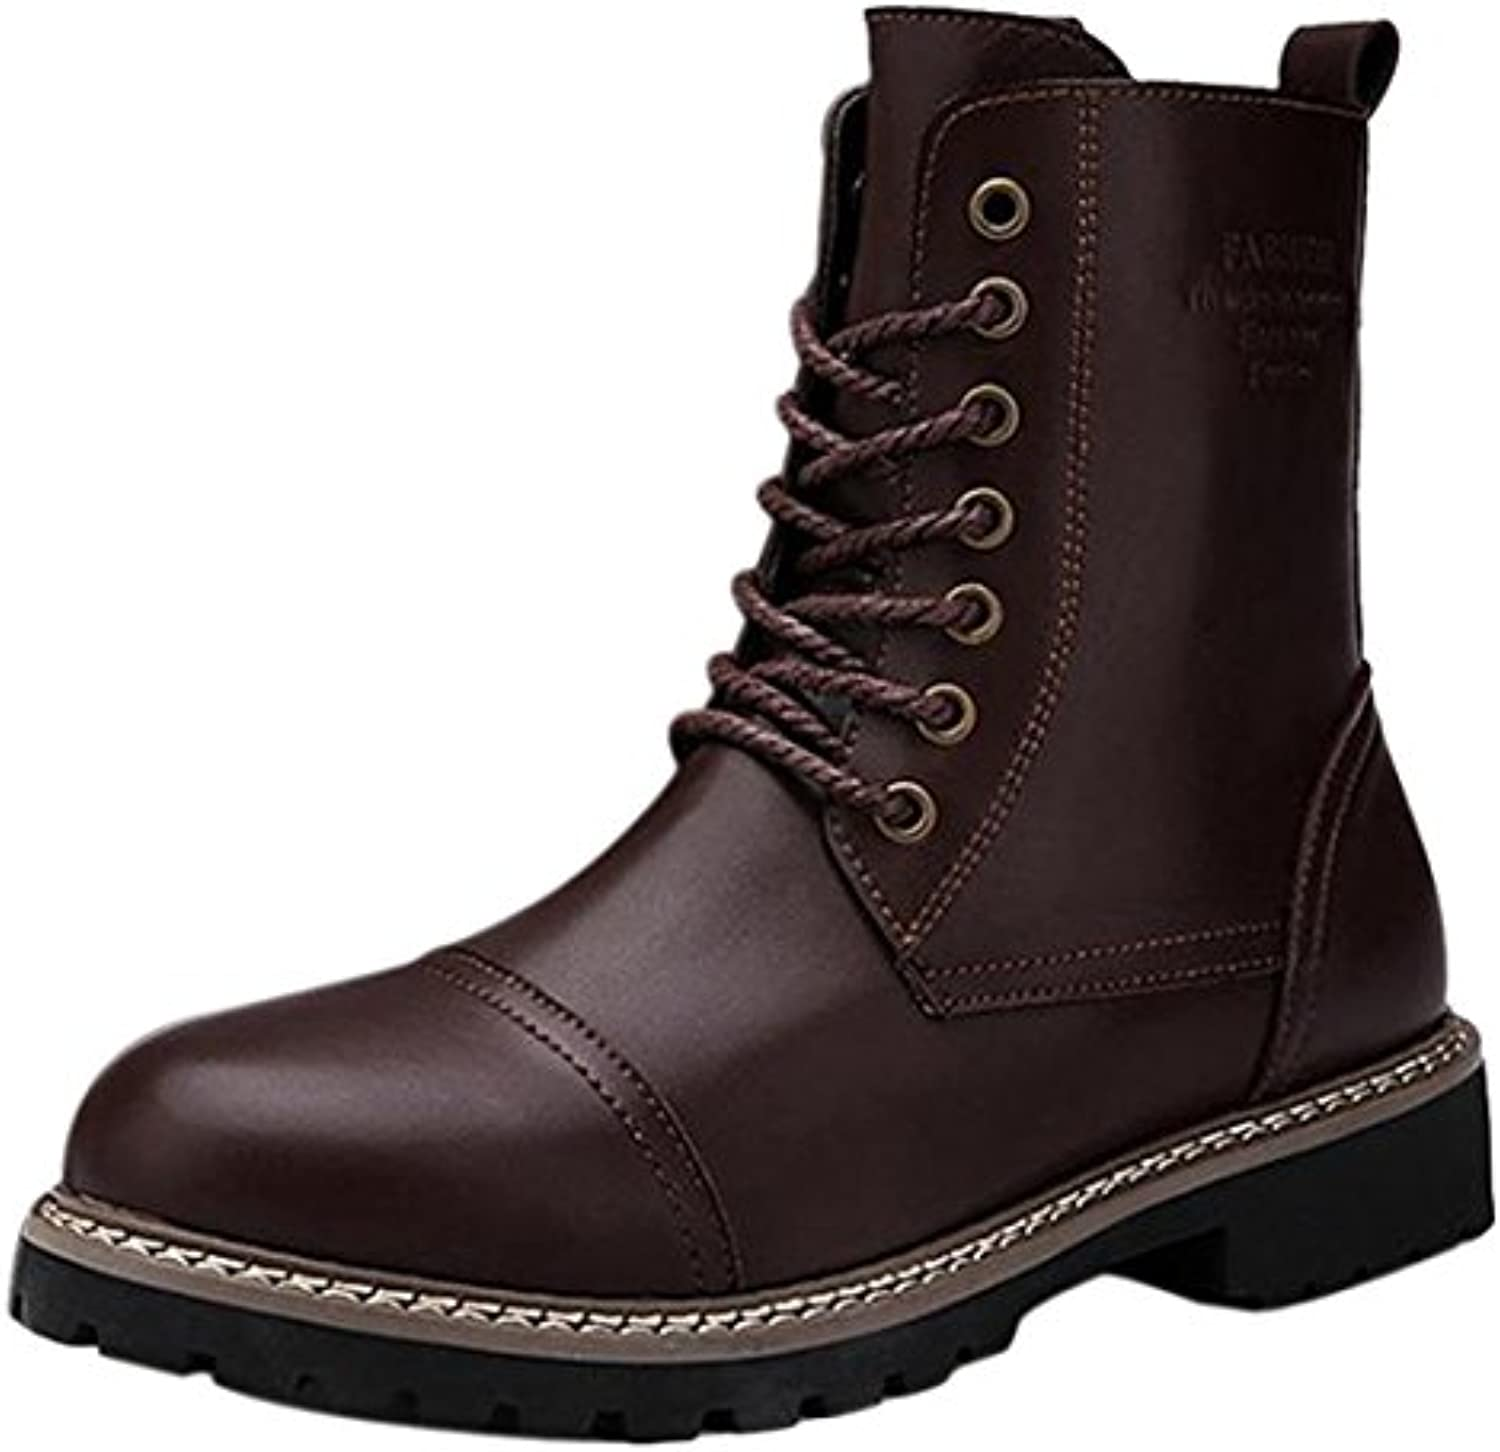 Neuer Mann Ankle Boot Martin Winter Schnee Warm Leather Lace Up Military Stiefel Schuhe